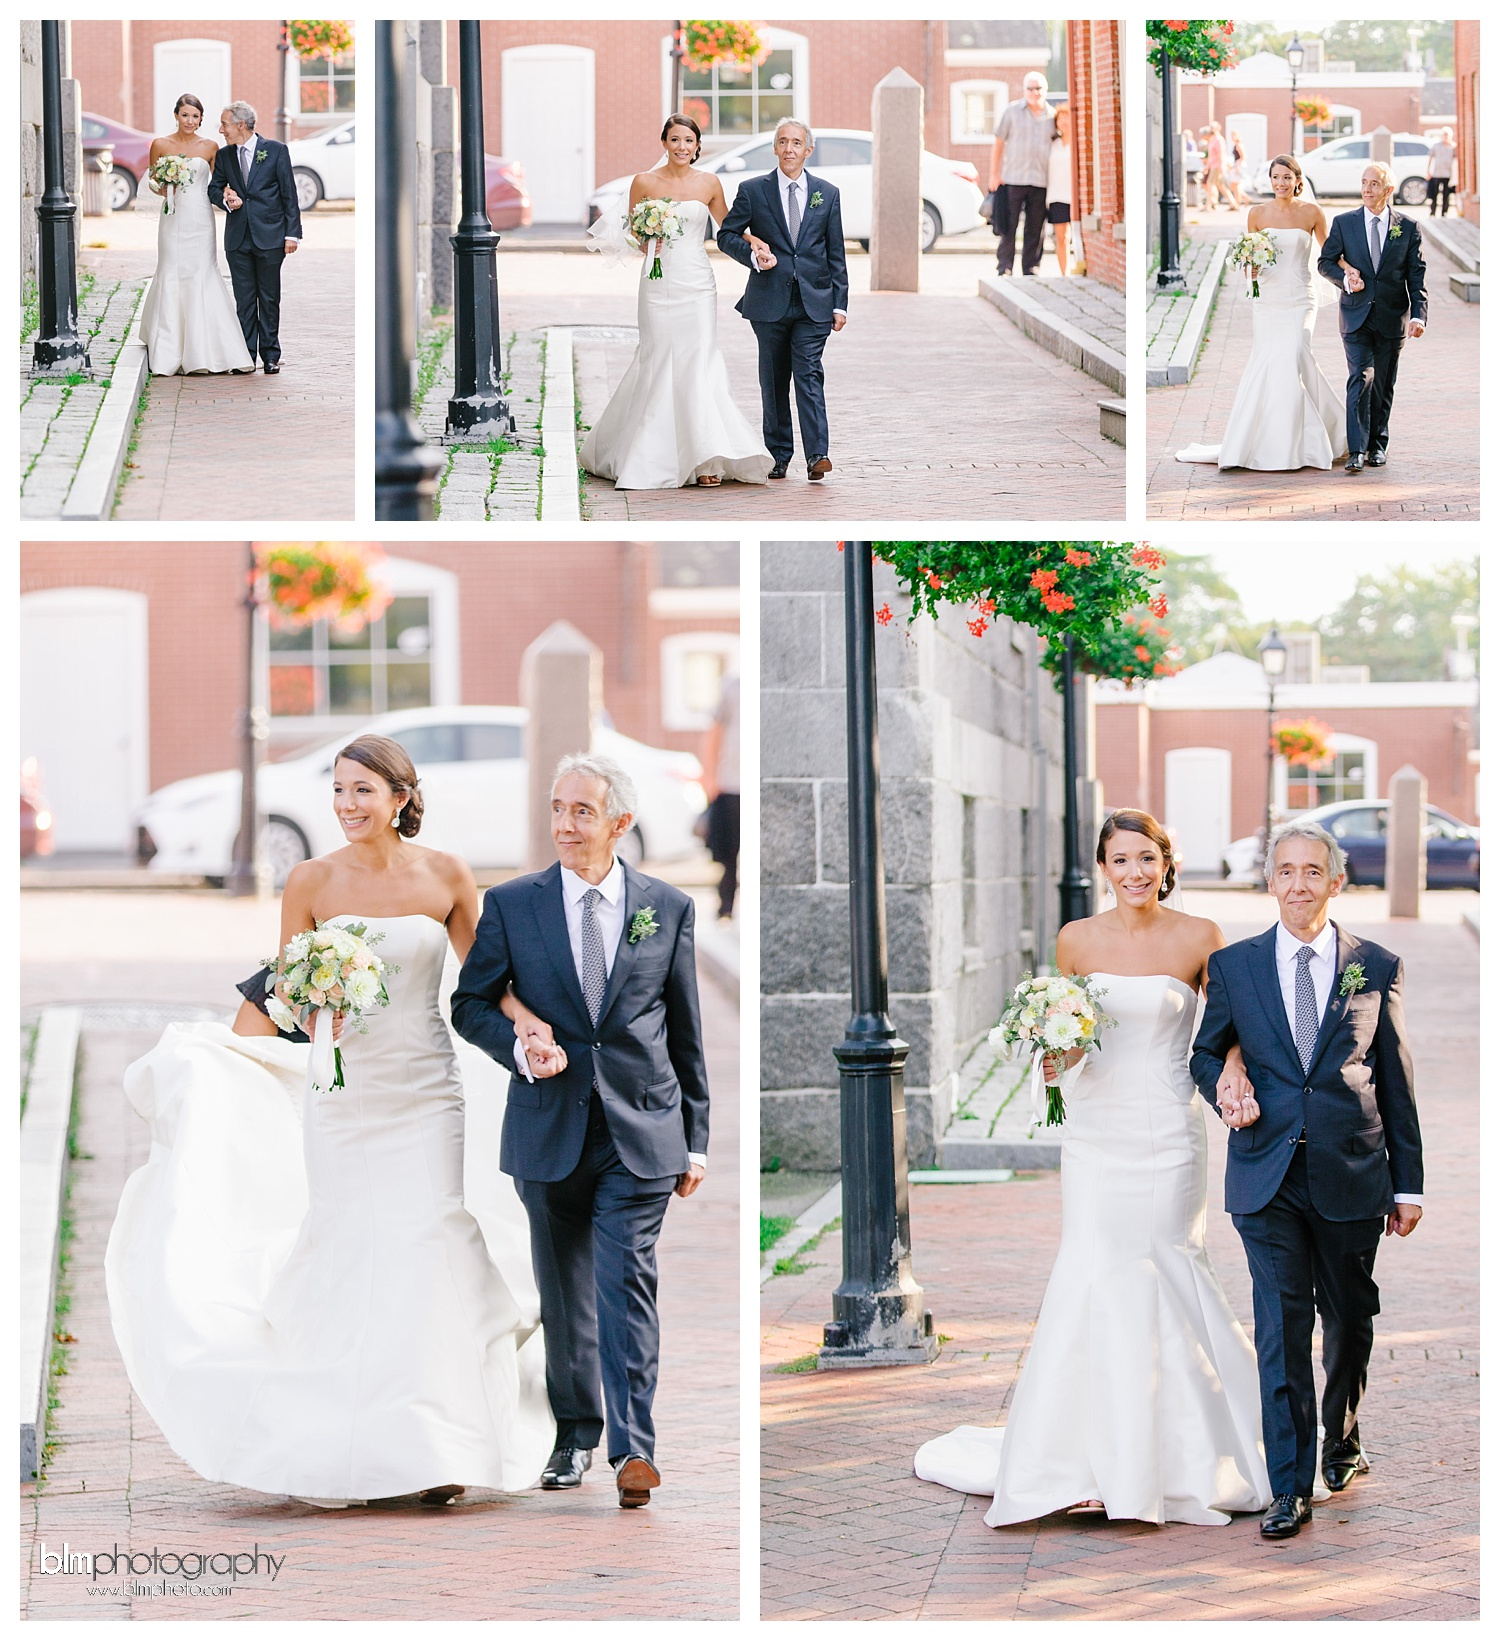 188Nathalie & Kirwan Married at The Maritime Museum_20170916_2406A.jpg